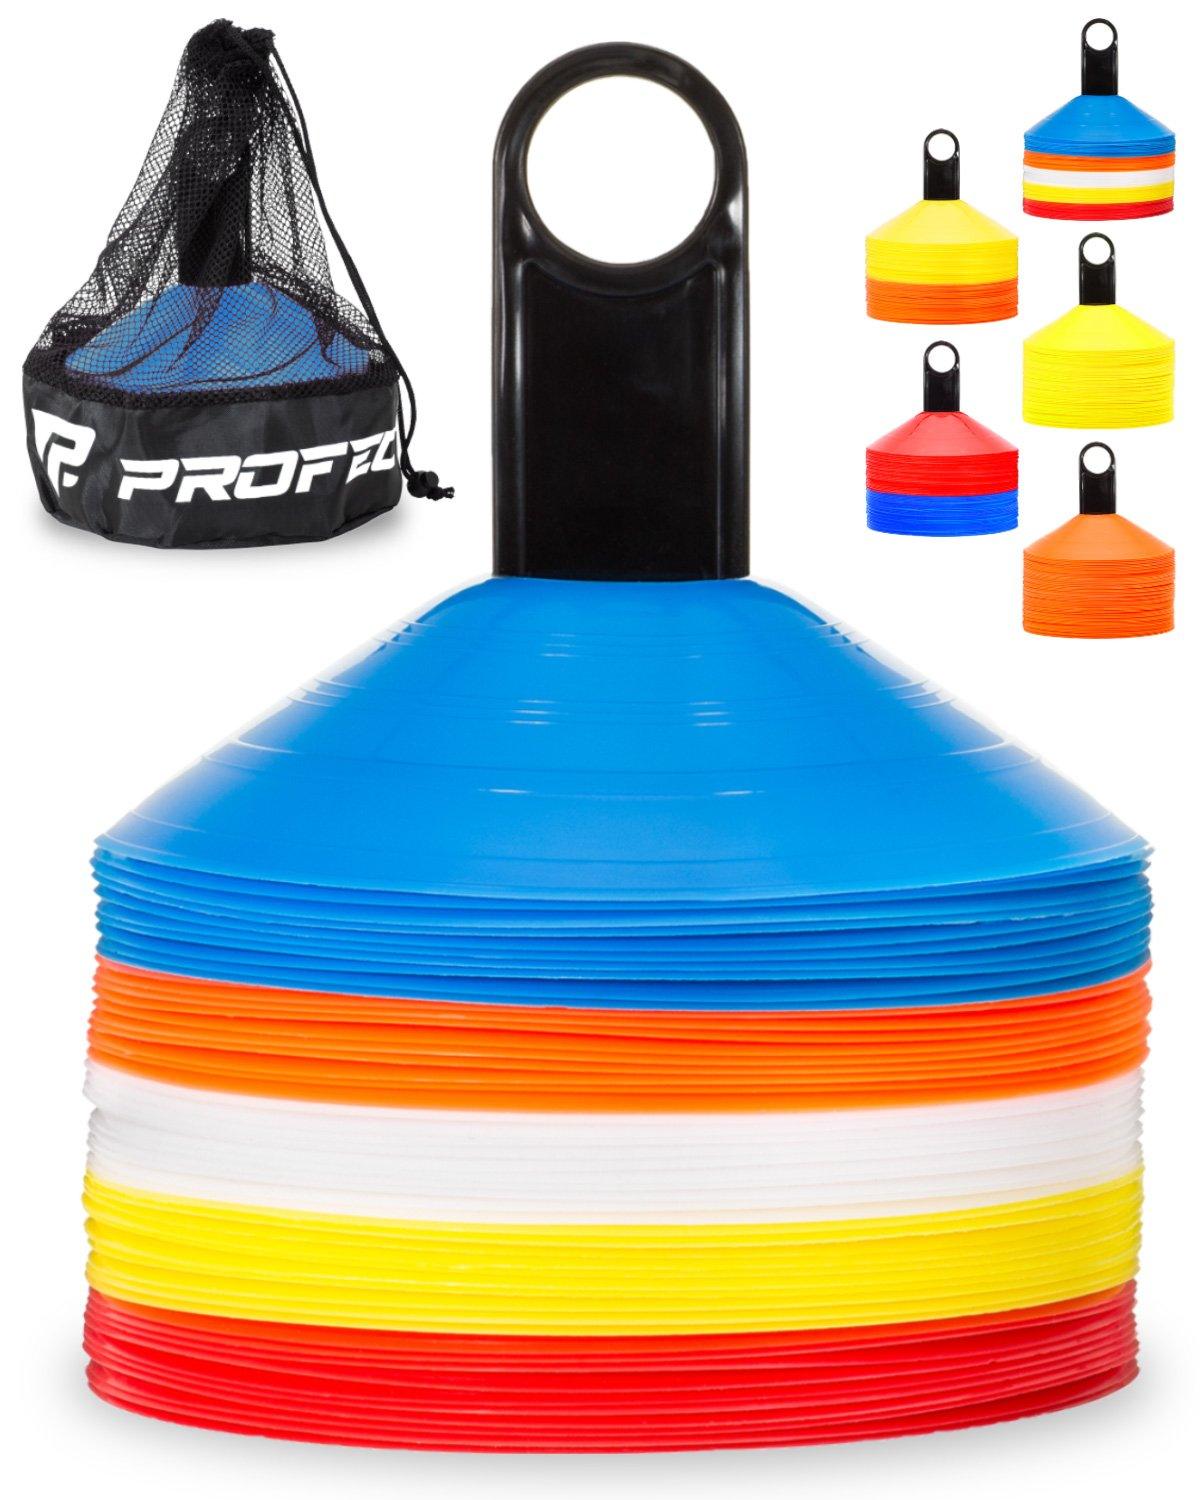 Pro Disc Cones (Set of 50) - Agility Soccer Cones with Carry Bag and Holder for Training, Football, Kids, Sports, Field Cone Markers - Includes Top 15 Drills eBook (Multi-Color) - Ctfitnesswear